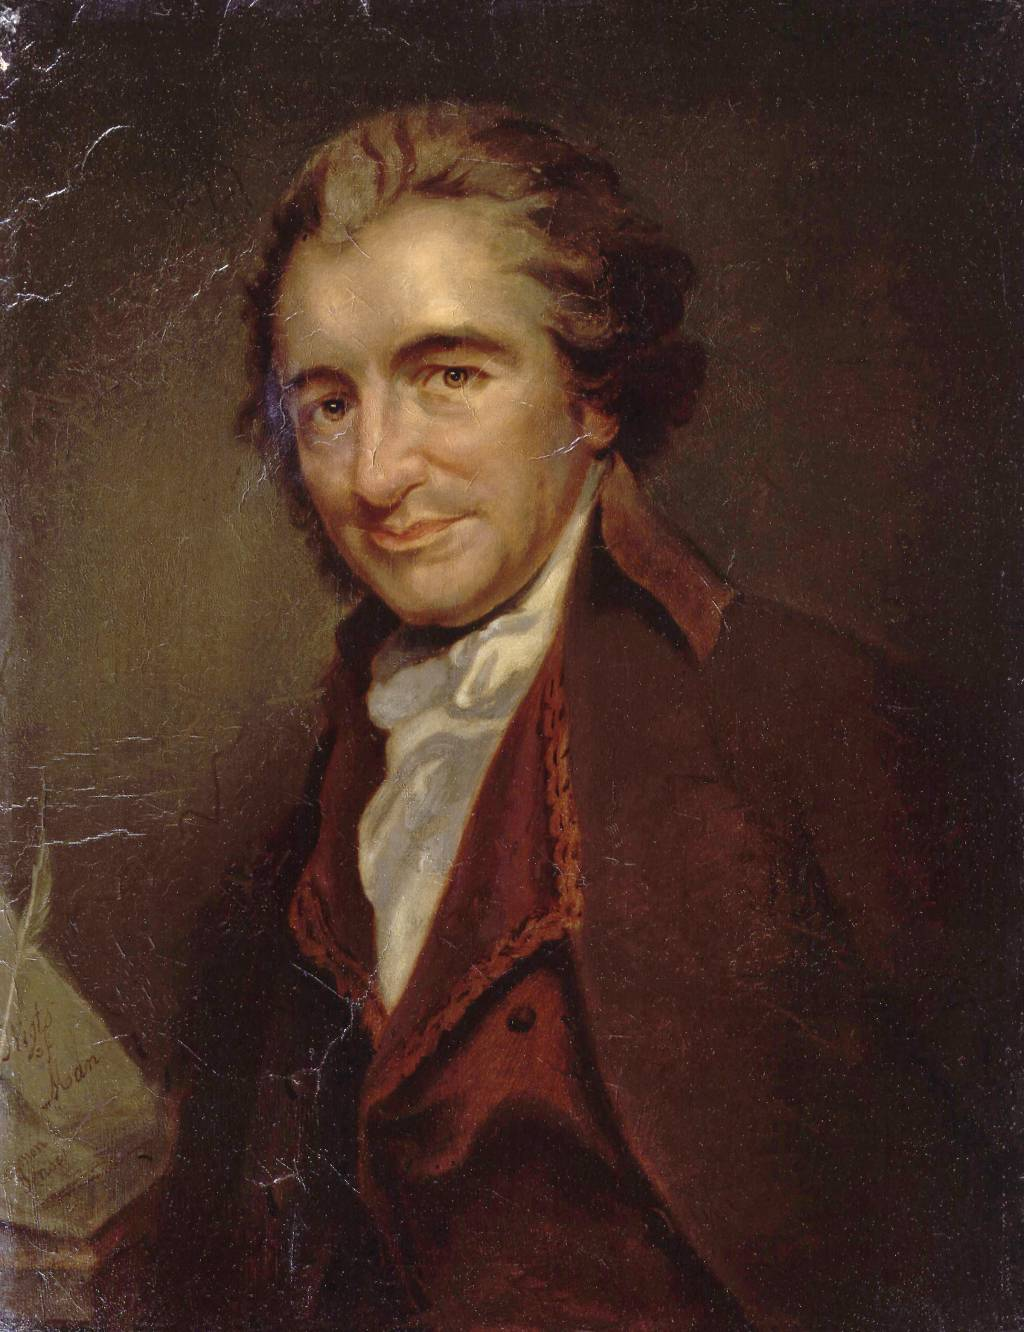 thomas paine propaganda and persuasion writework thomas paine a painting by e milliere 1880 after an engraving by